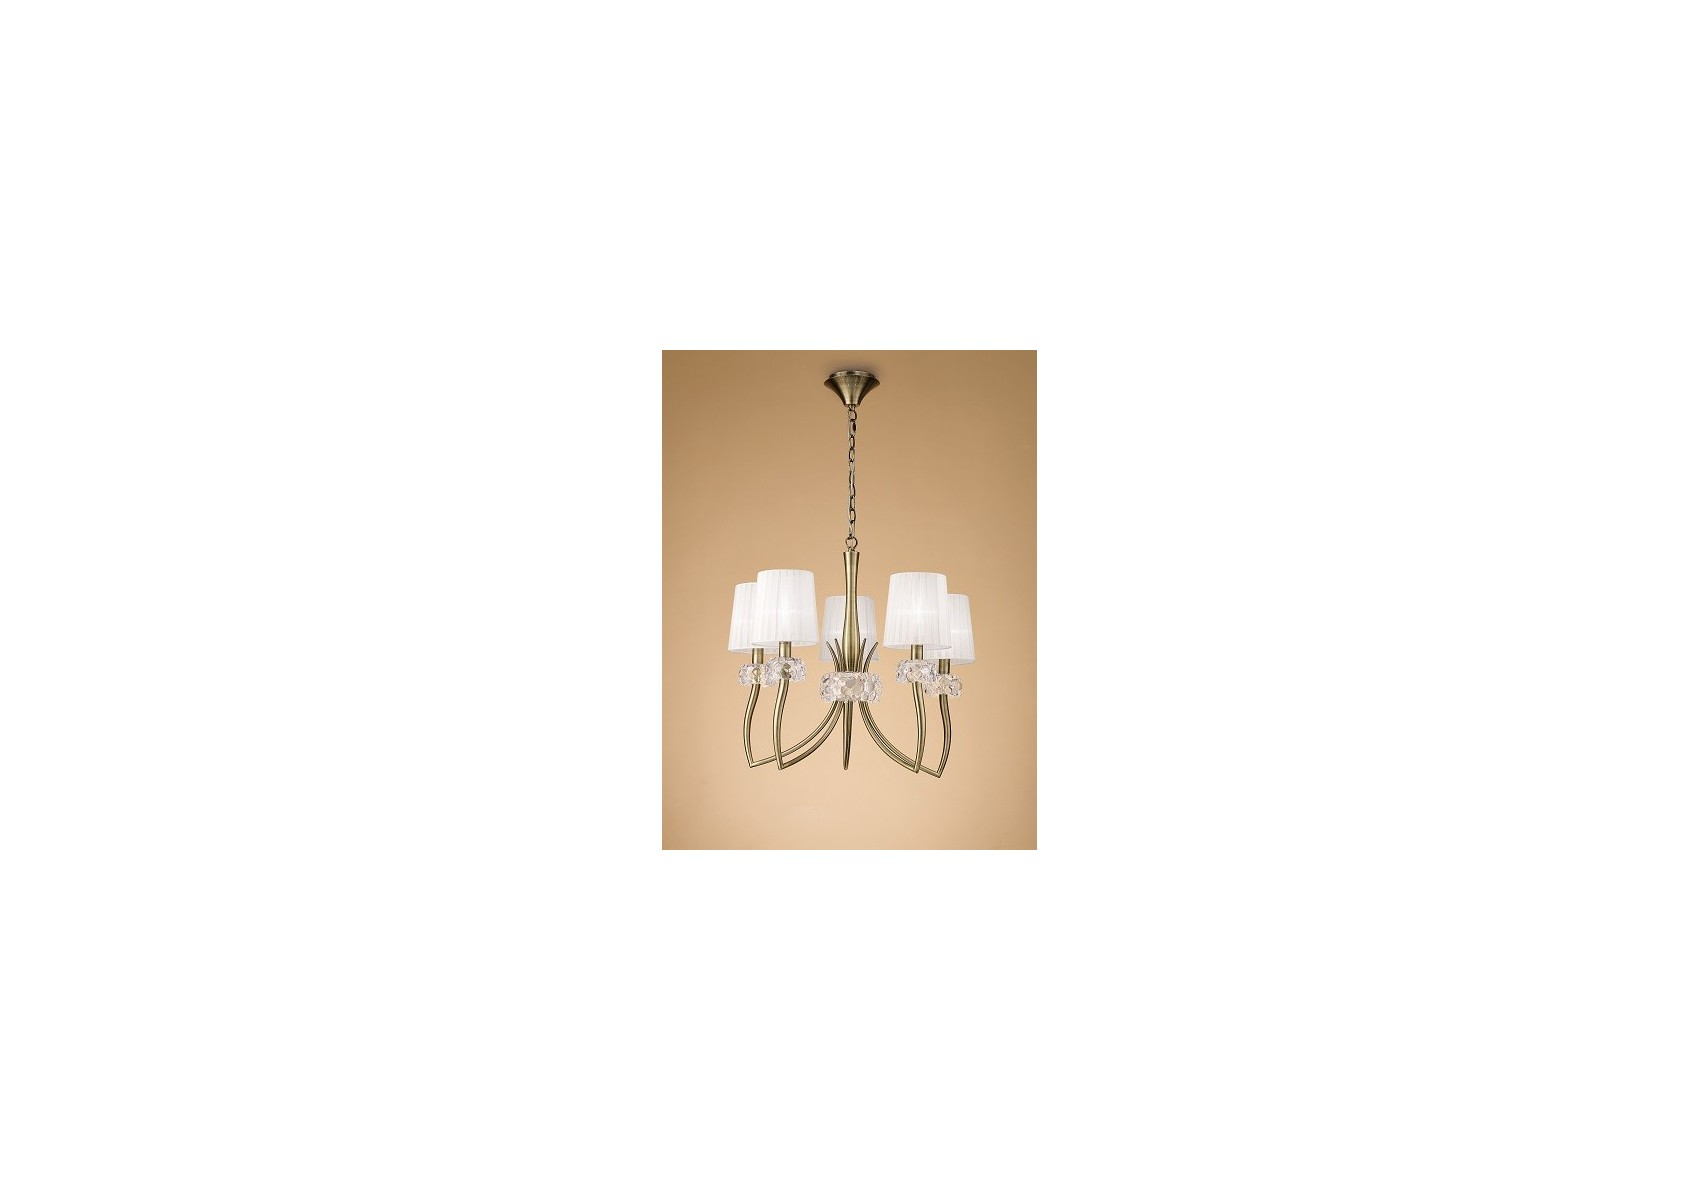 Grande Suspension Luminaire Grande Suspension Design Loewe 5 Lampes Boite à Design